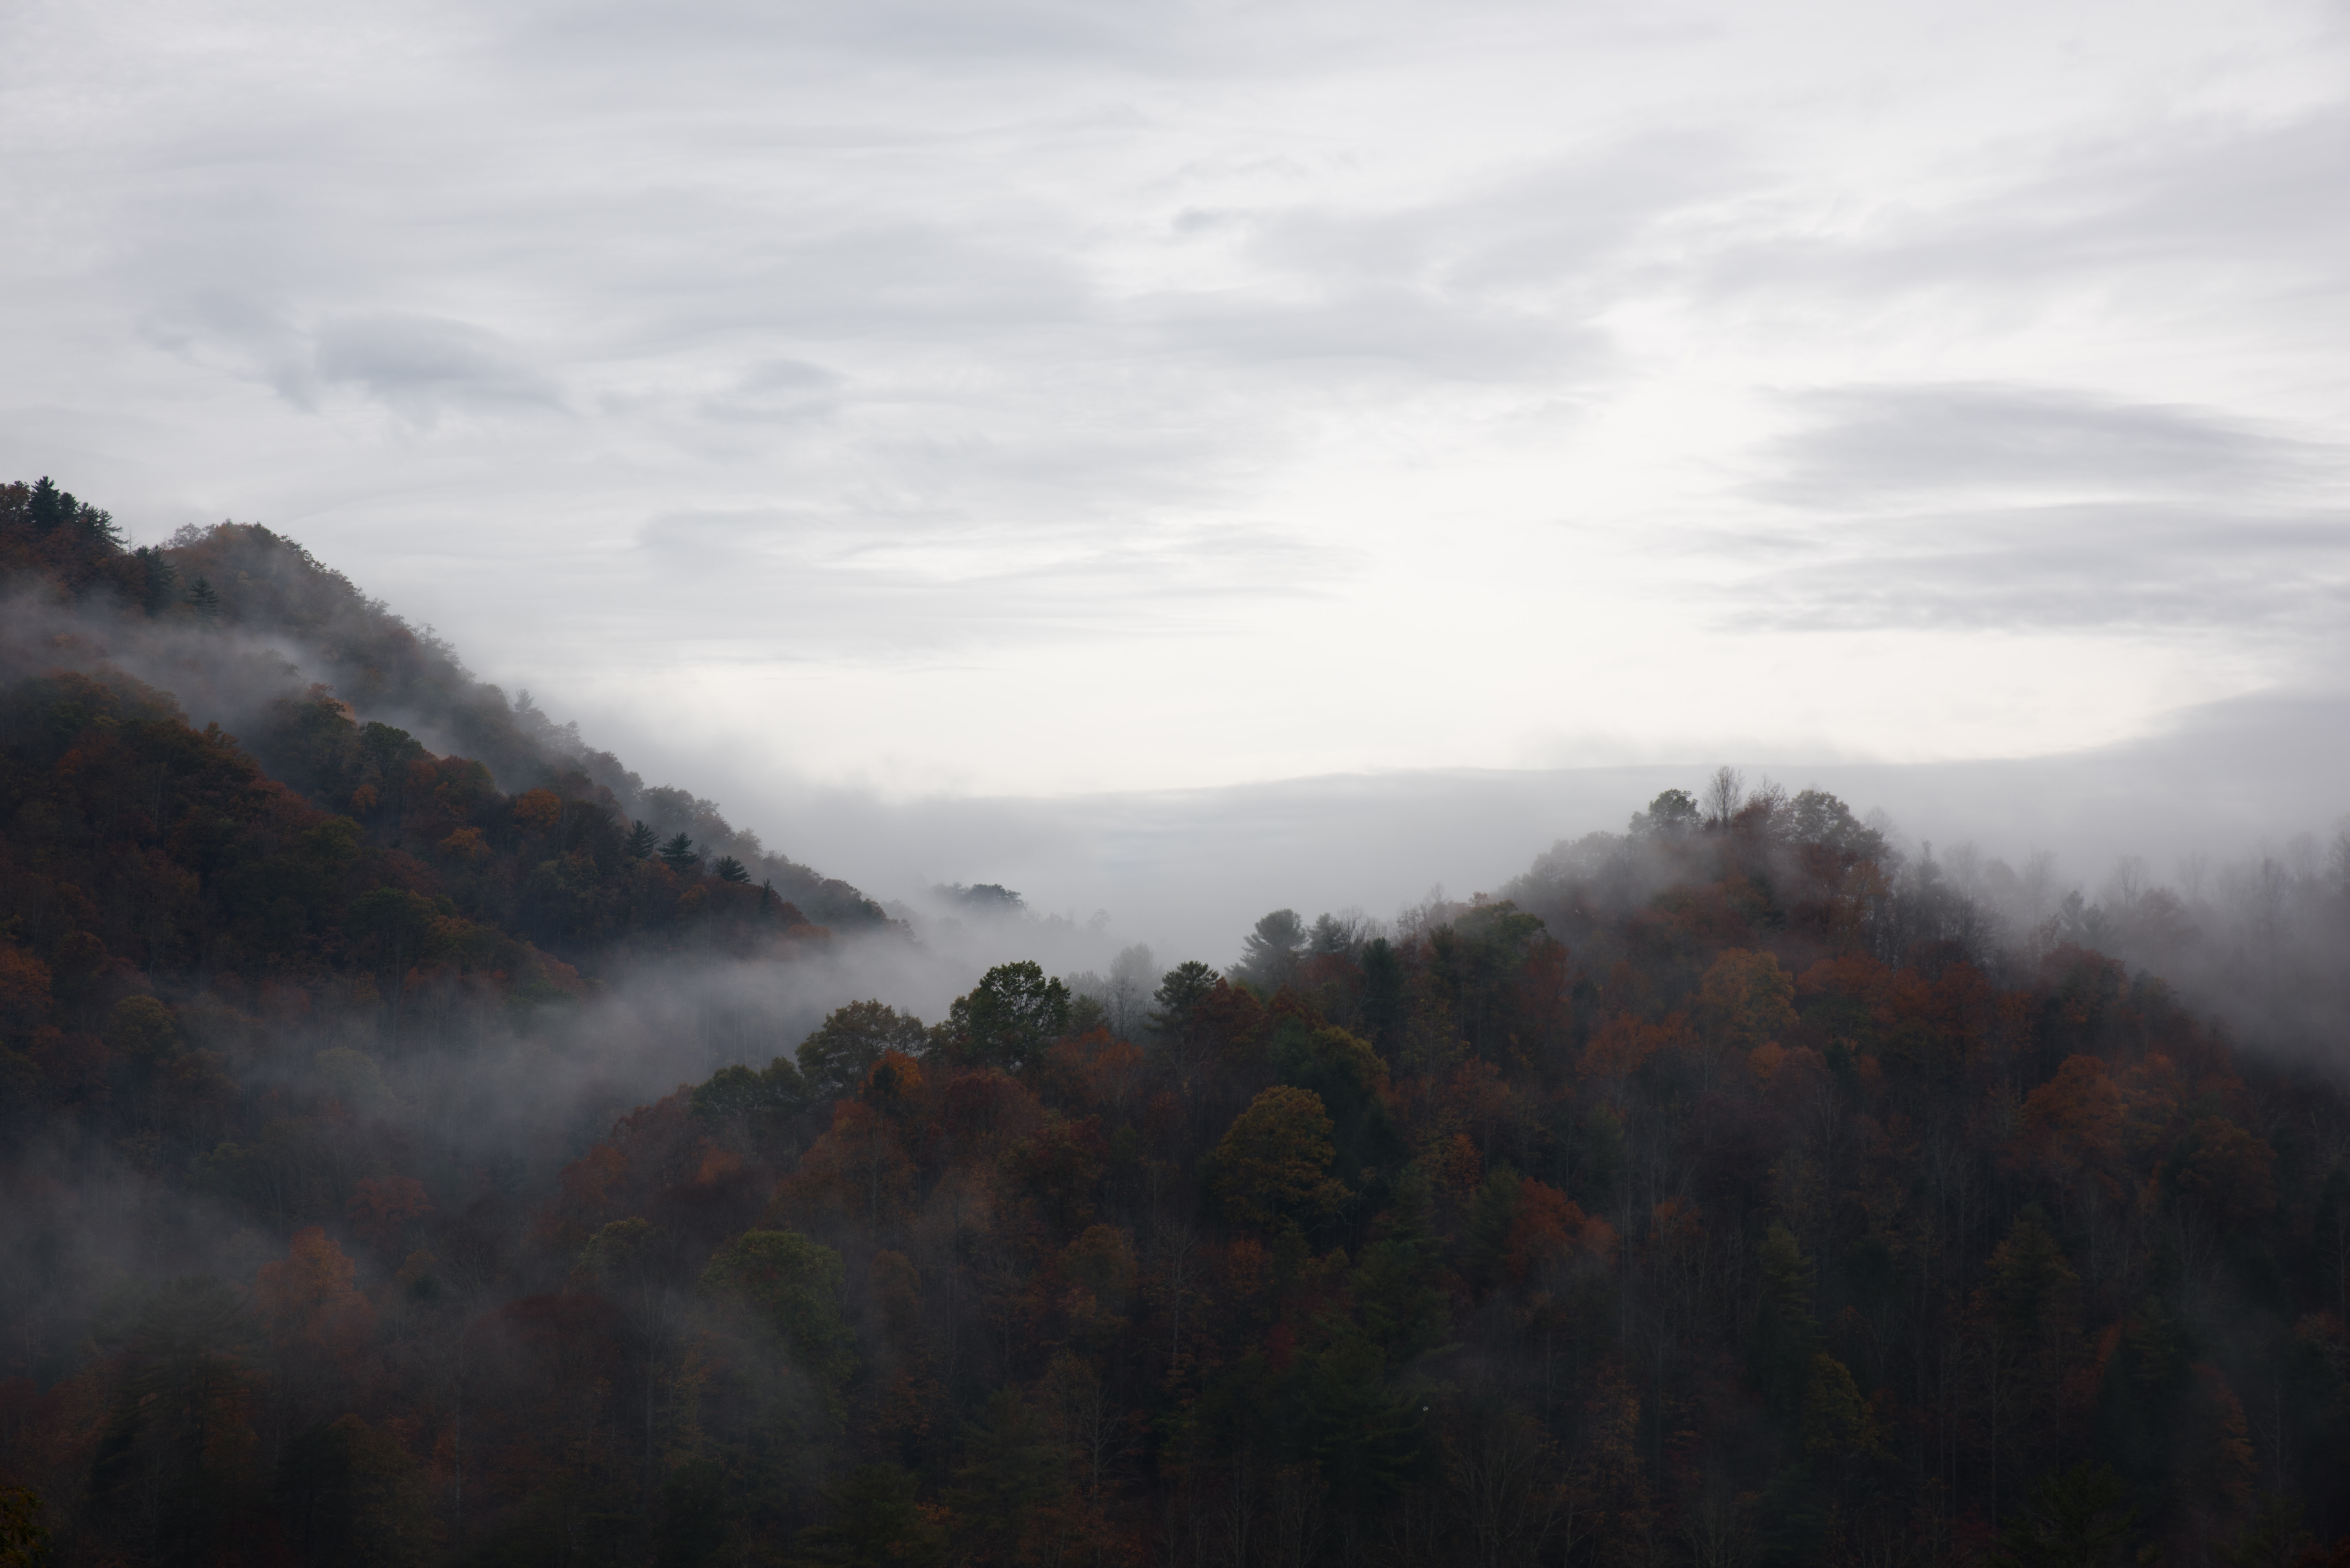 Colorful trees on hills wreathed in fog